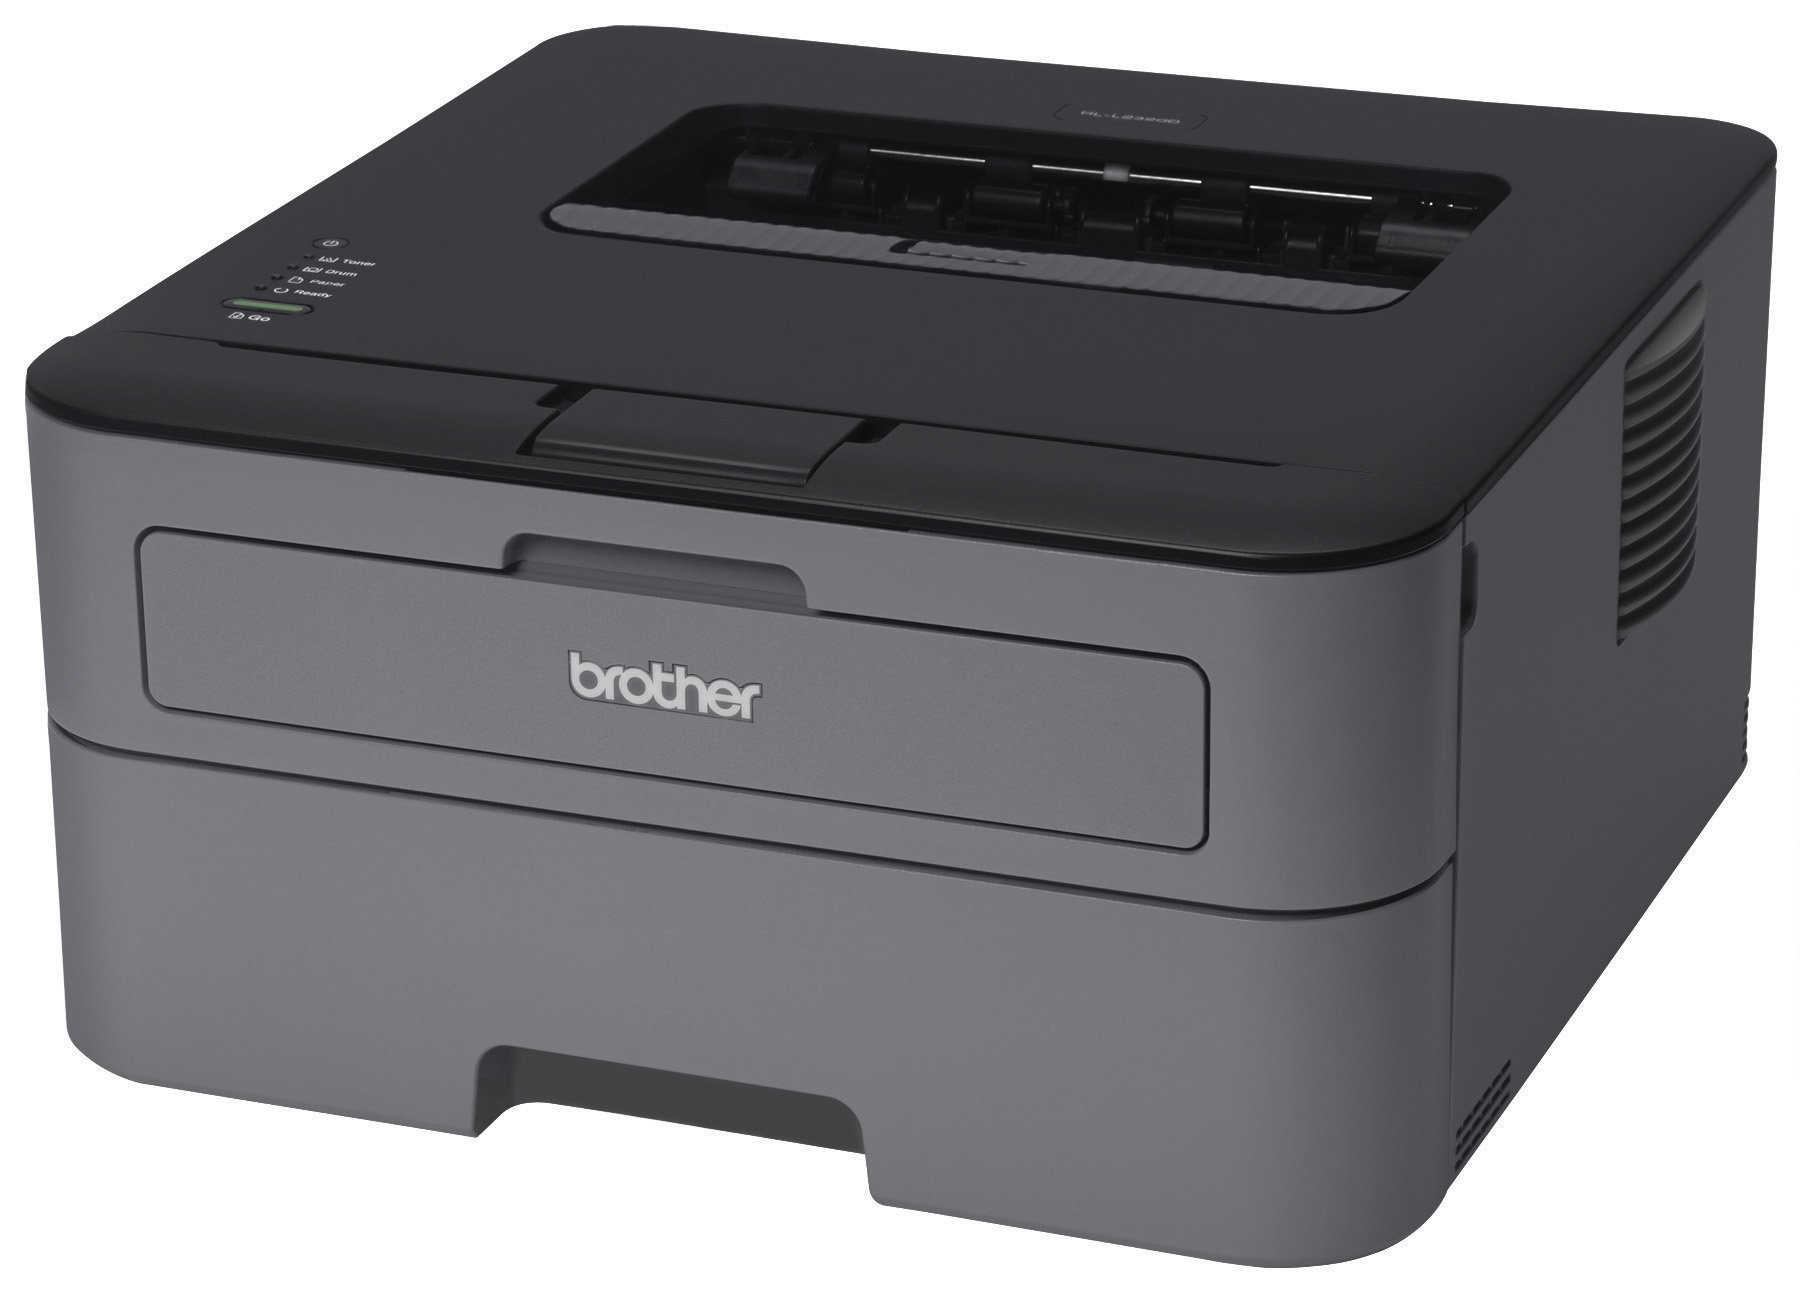 Brother HL-L2300D Monochrome Laser Printer with Duplex Printing by Brother (Image #1)